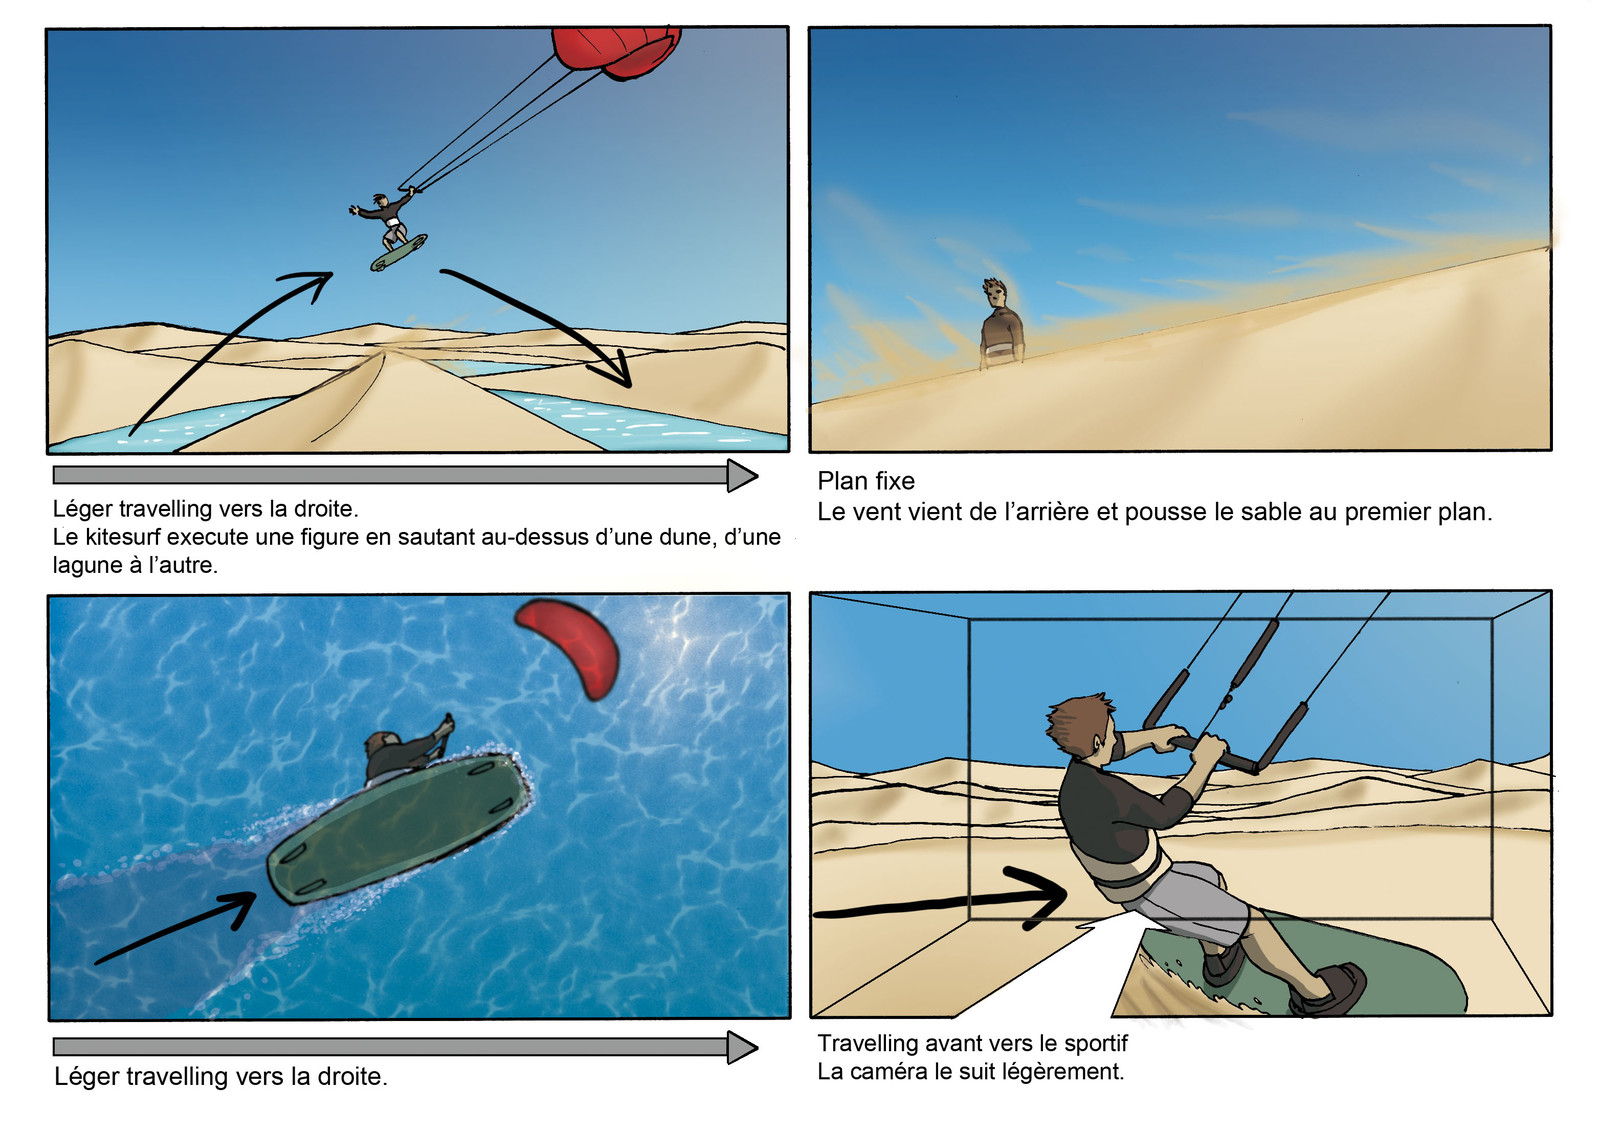 Storyboard for an advertising about KiteSurf  - Page 4 - (In French)